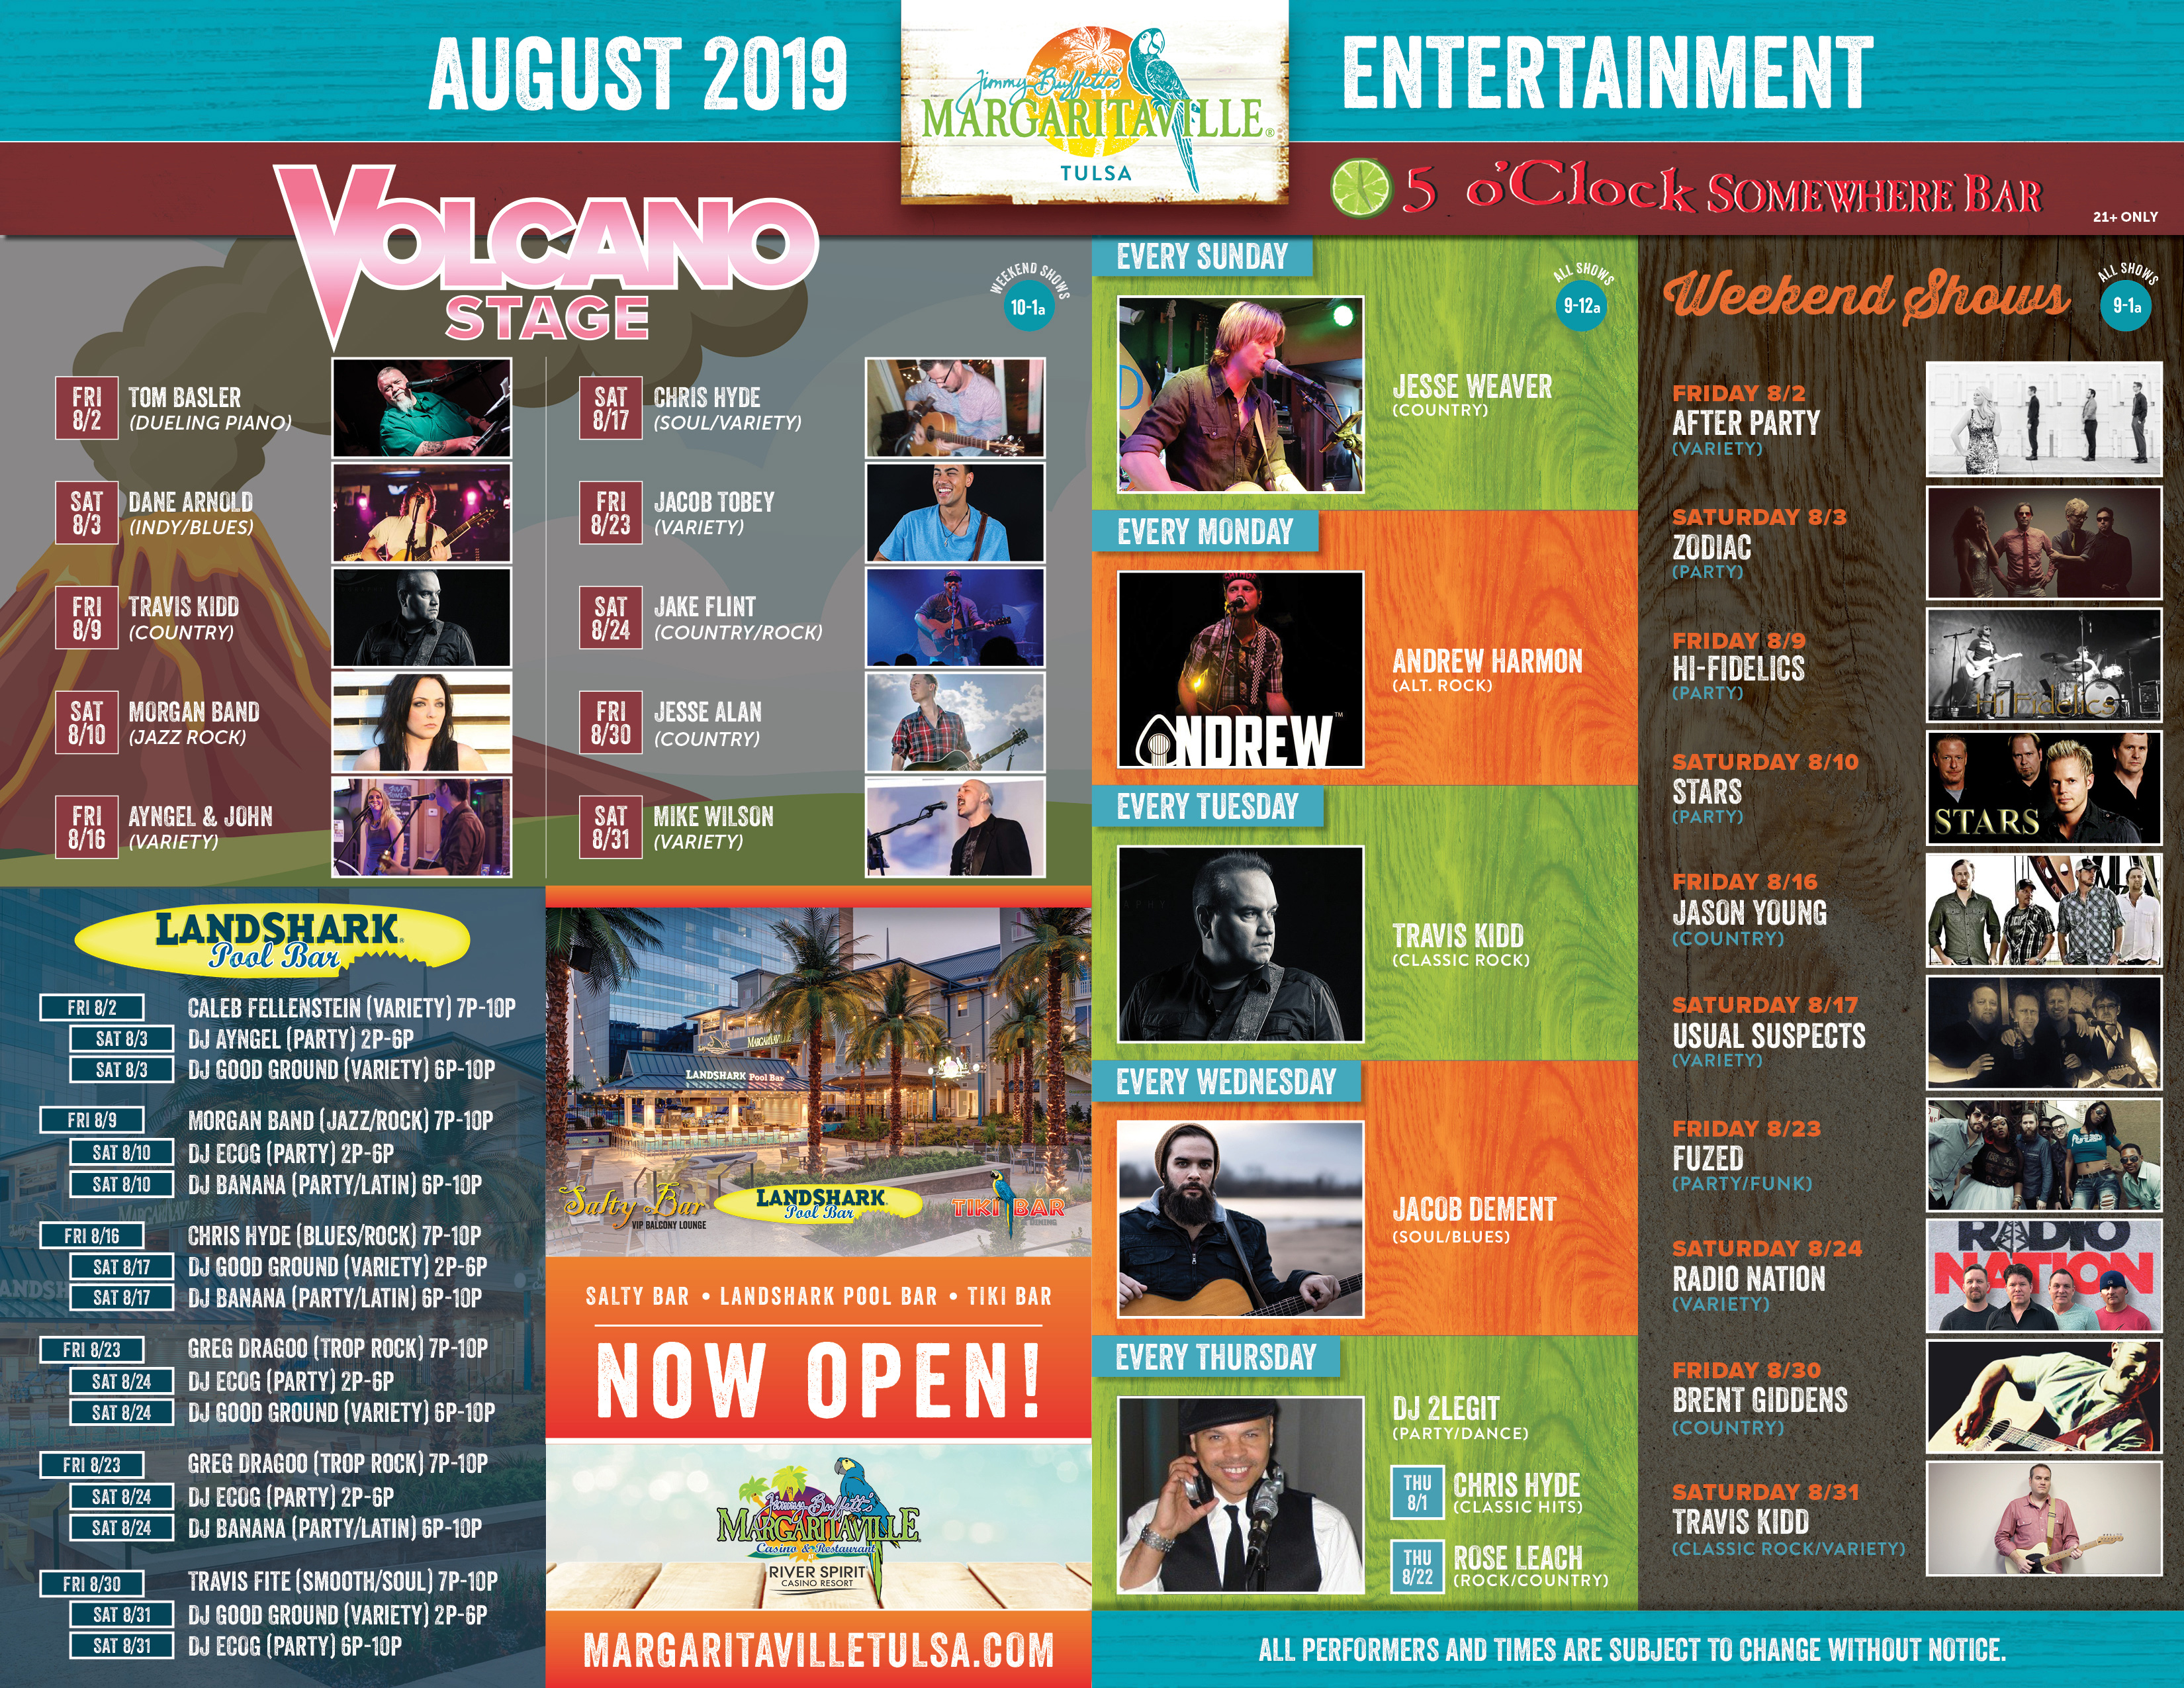 Margaritaville Tulsa August Calendar of Events. Visually impaired customers please call for assistance or read next tab